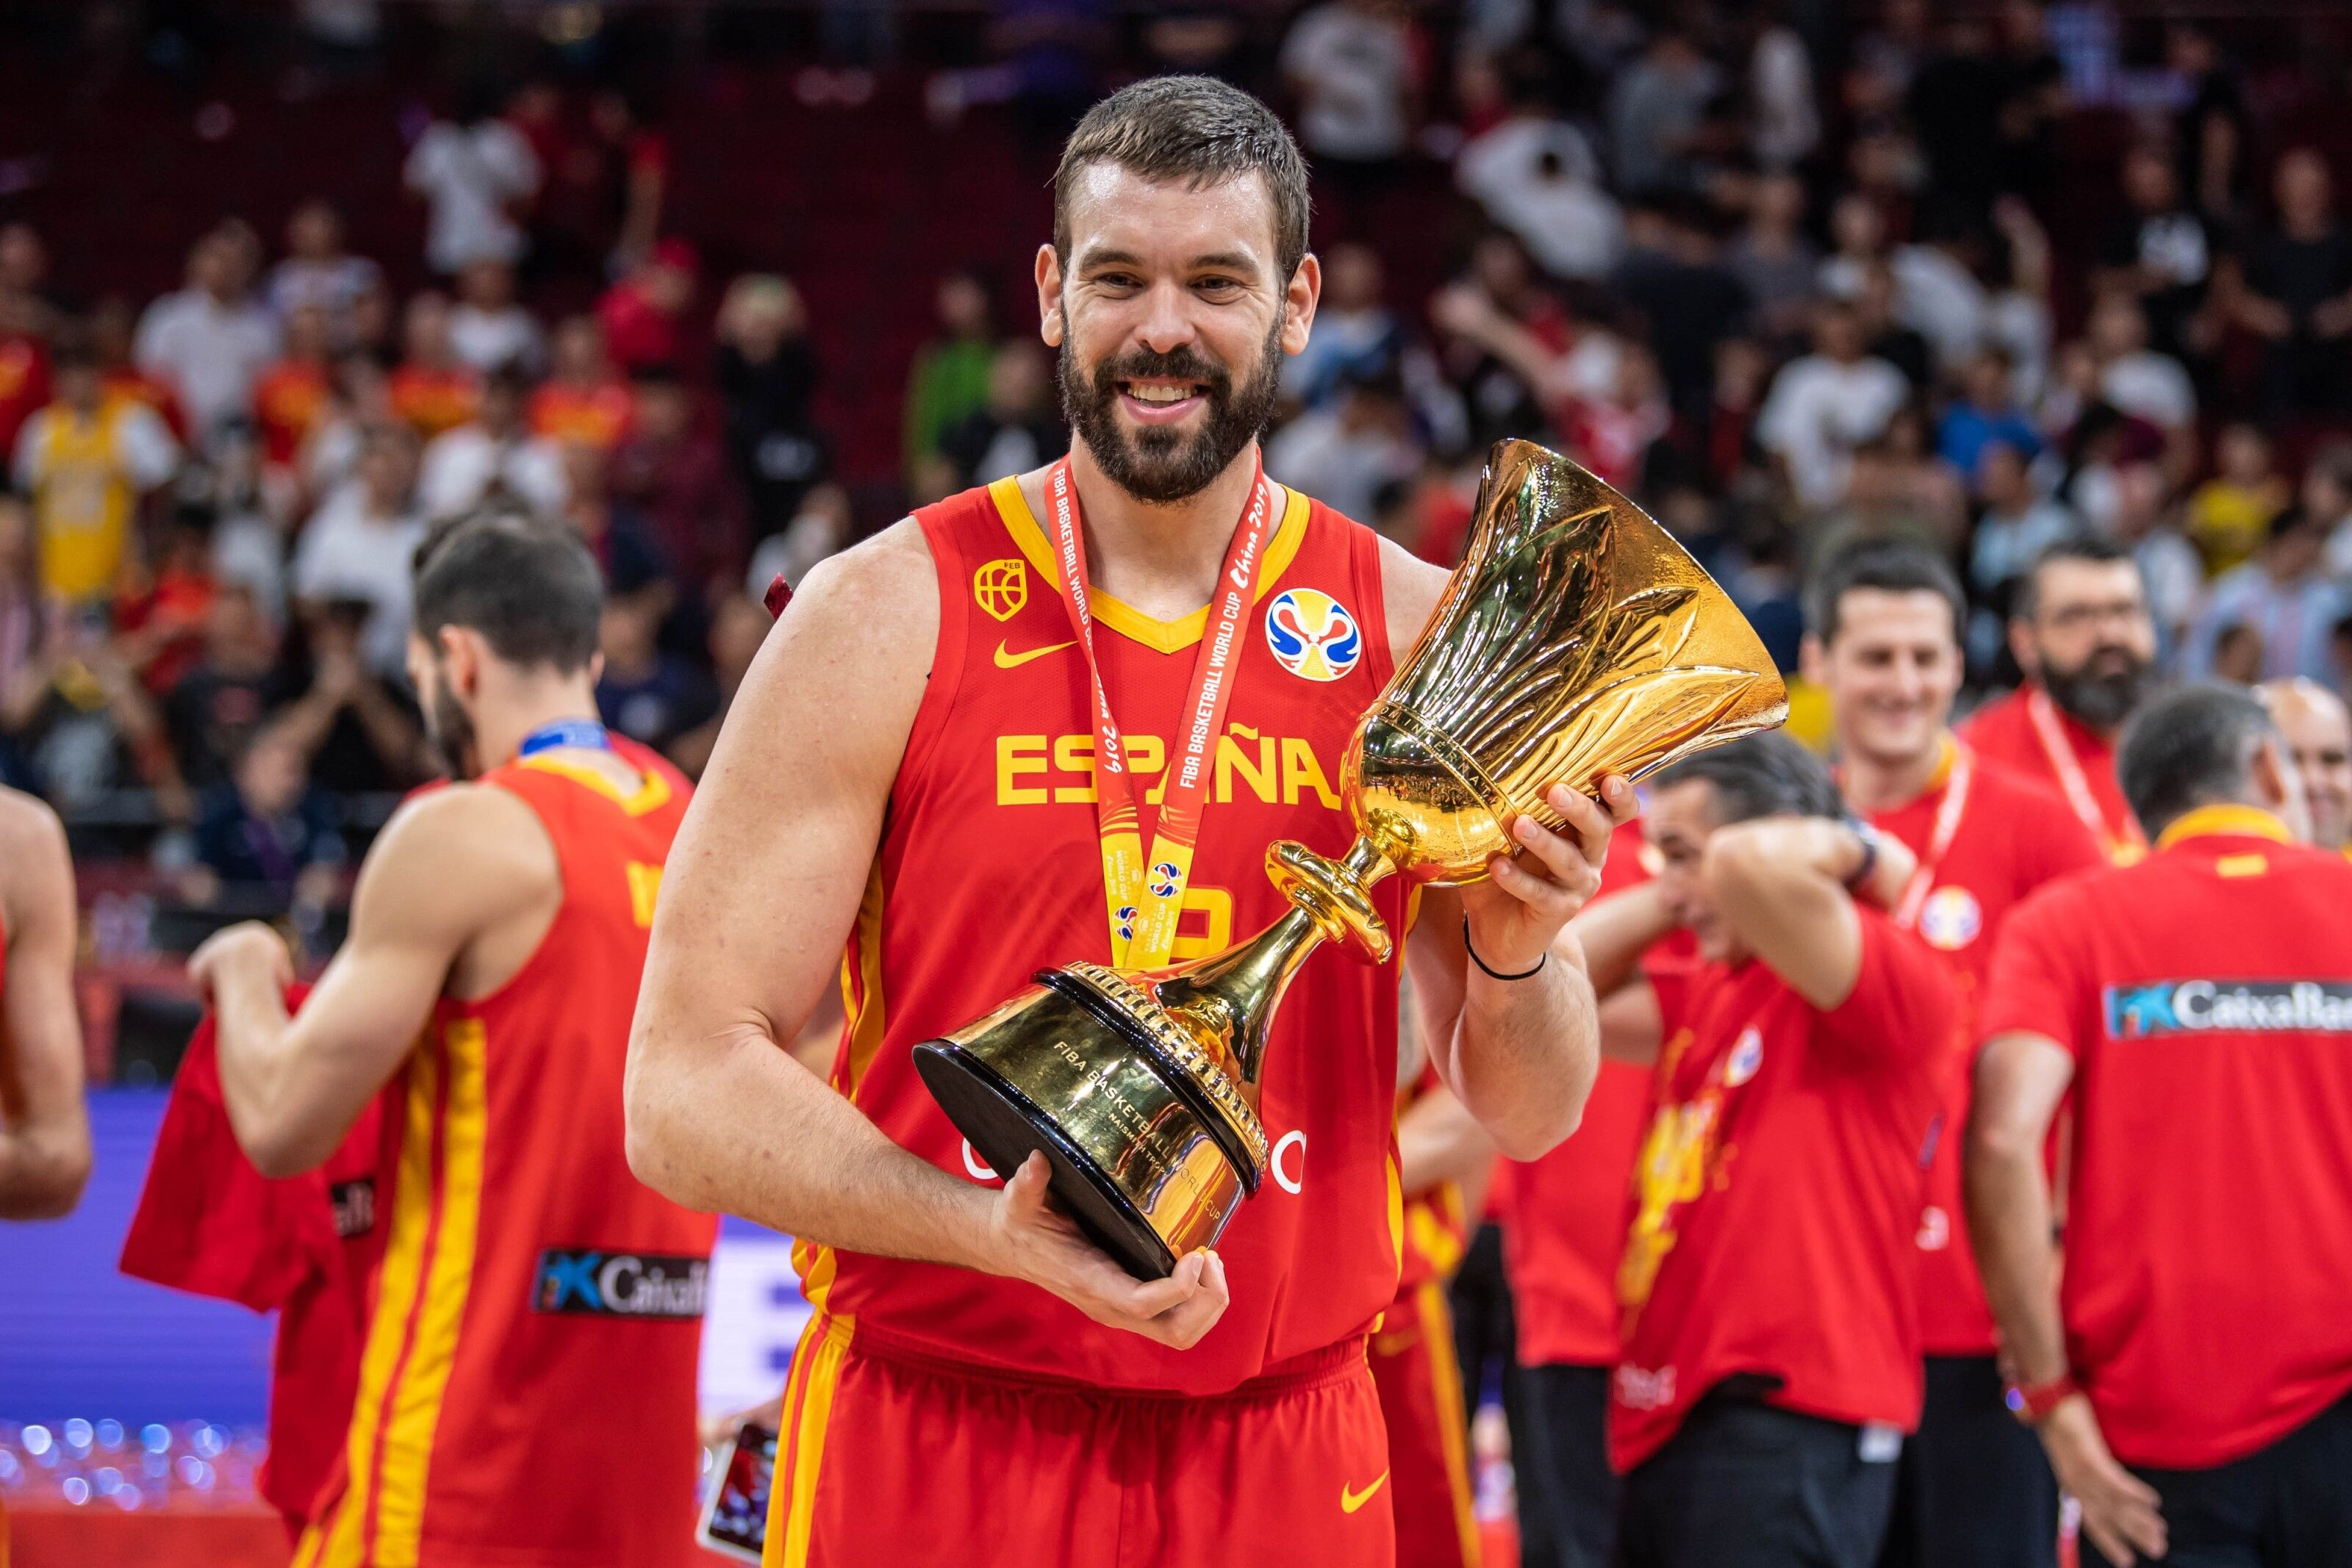 If there is a roster teardown coming in Toronto, the Boston Celtics should consider acquiring Marc Gasol